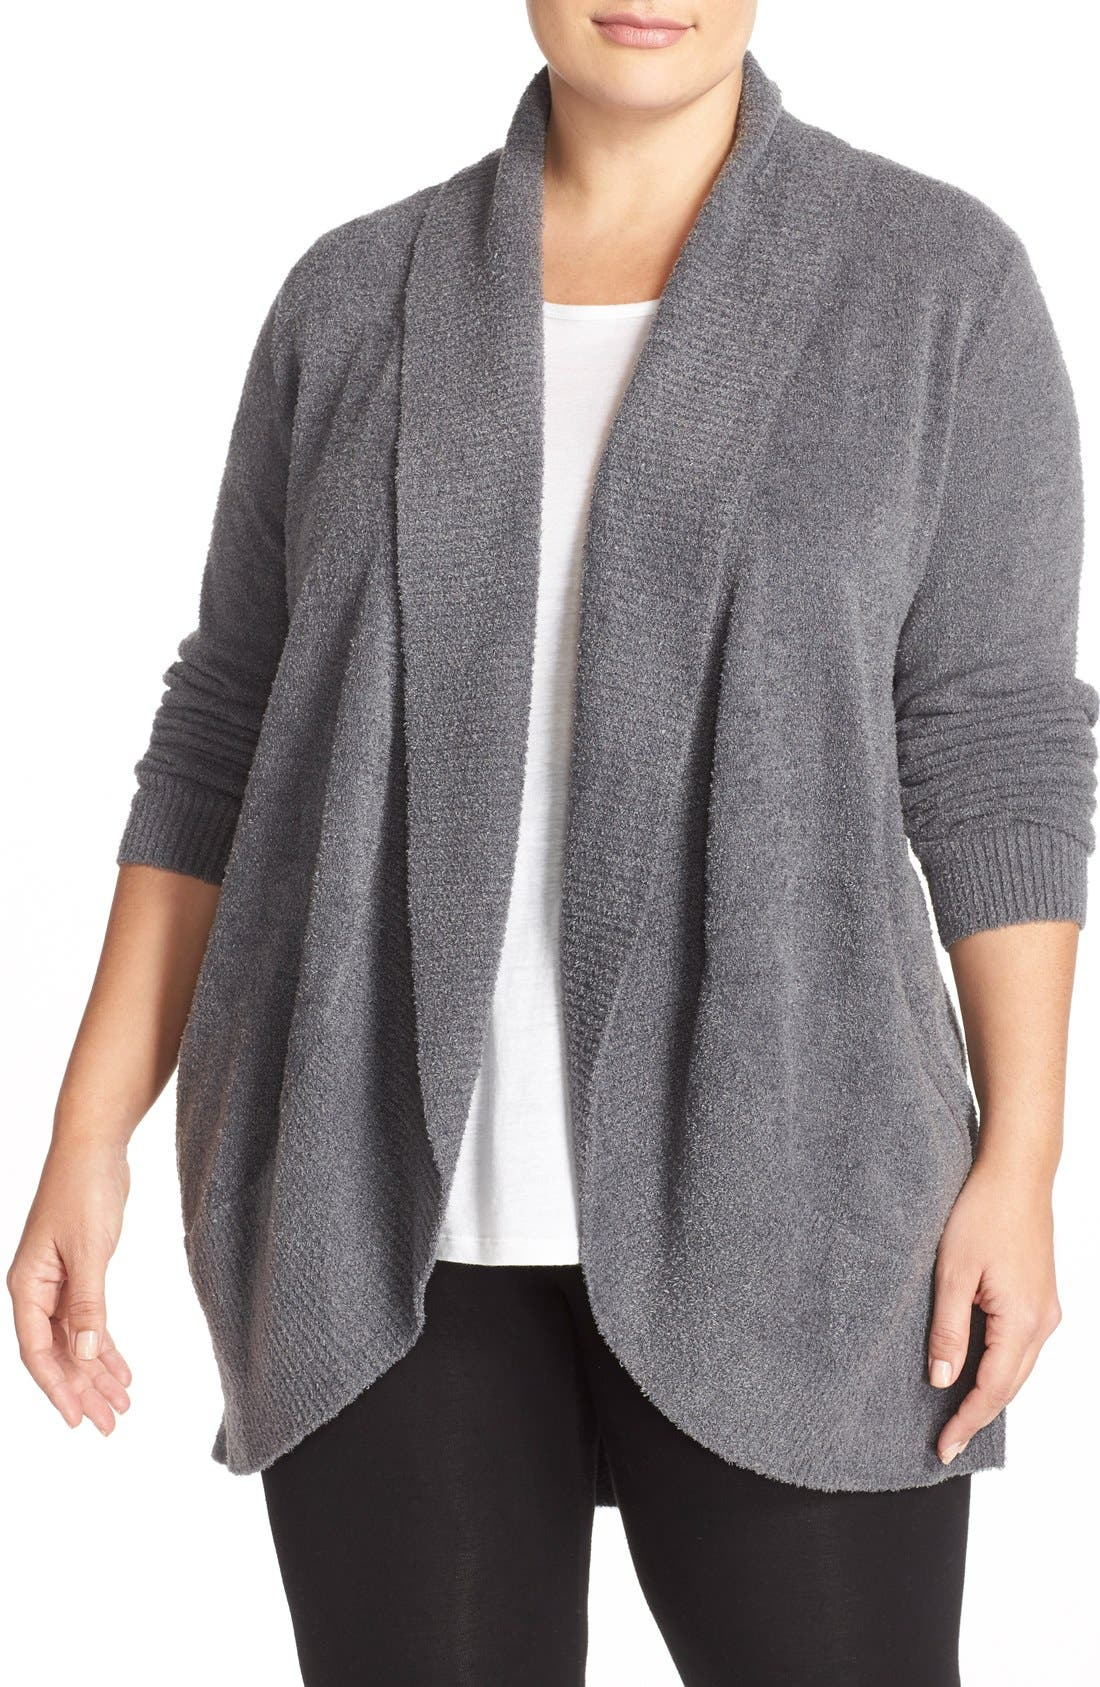 Alternate Image 1 Selected - Barefoot Dreams® CozyChic Lite® Circle Cardigan (Plus Size)